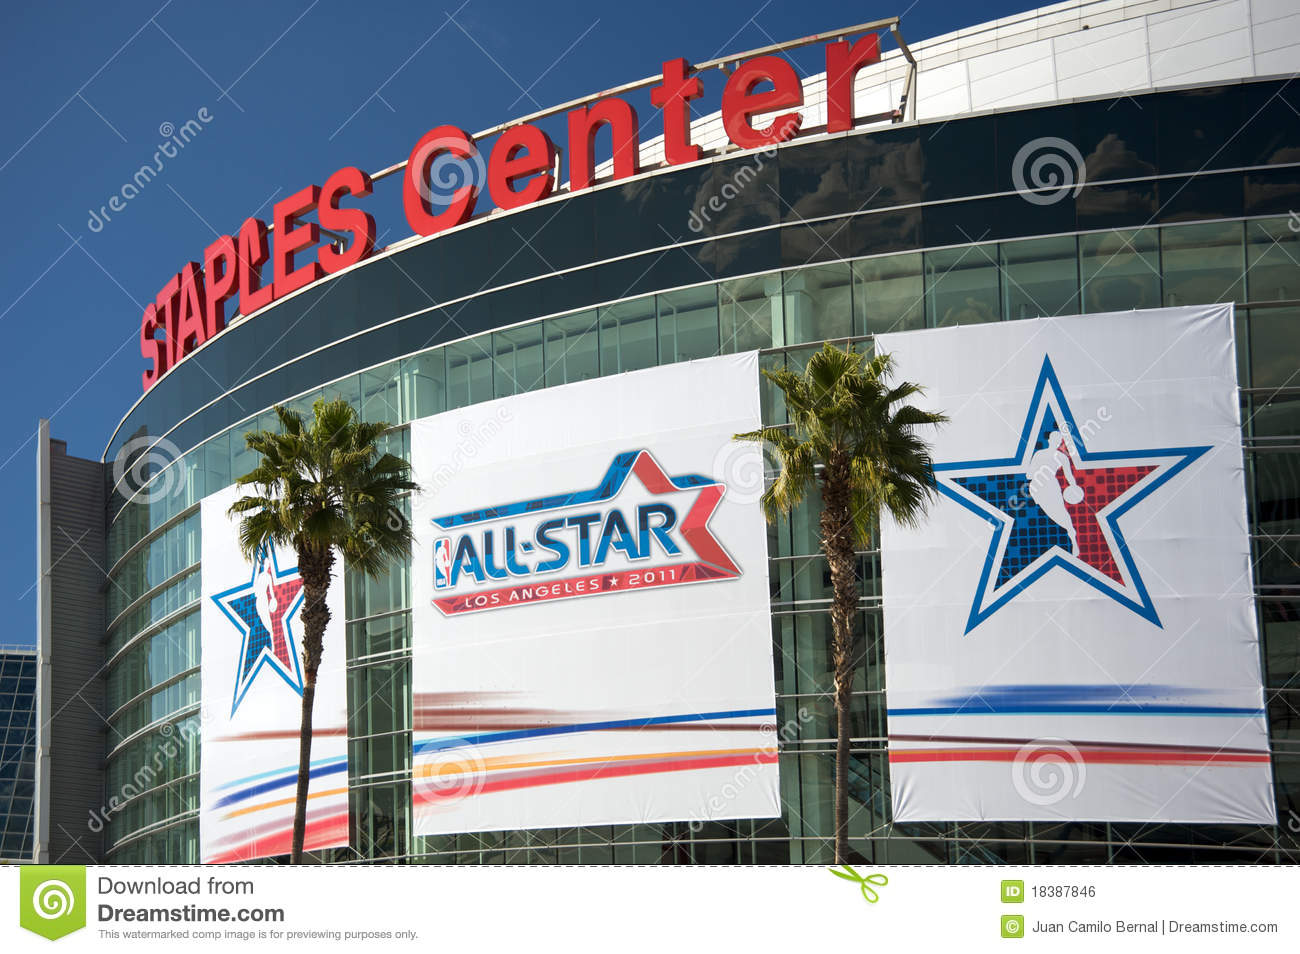 Nba all star game at the staples center editorial photo for Staples bernal